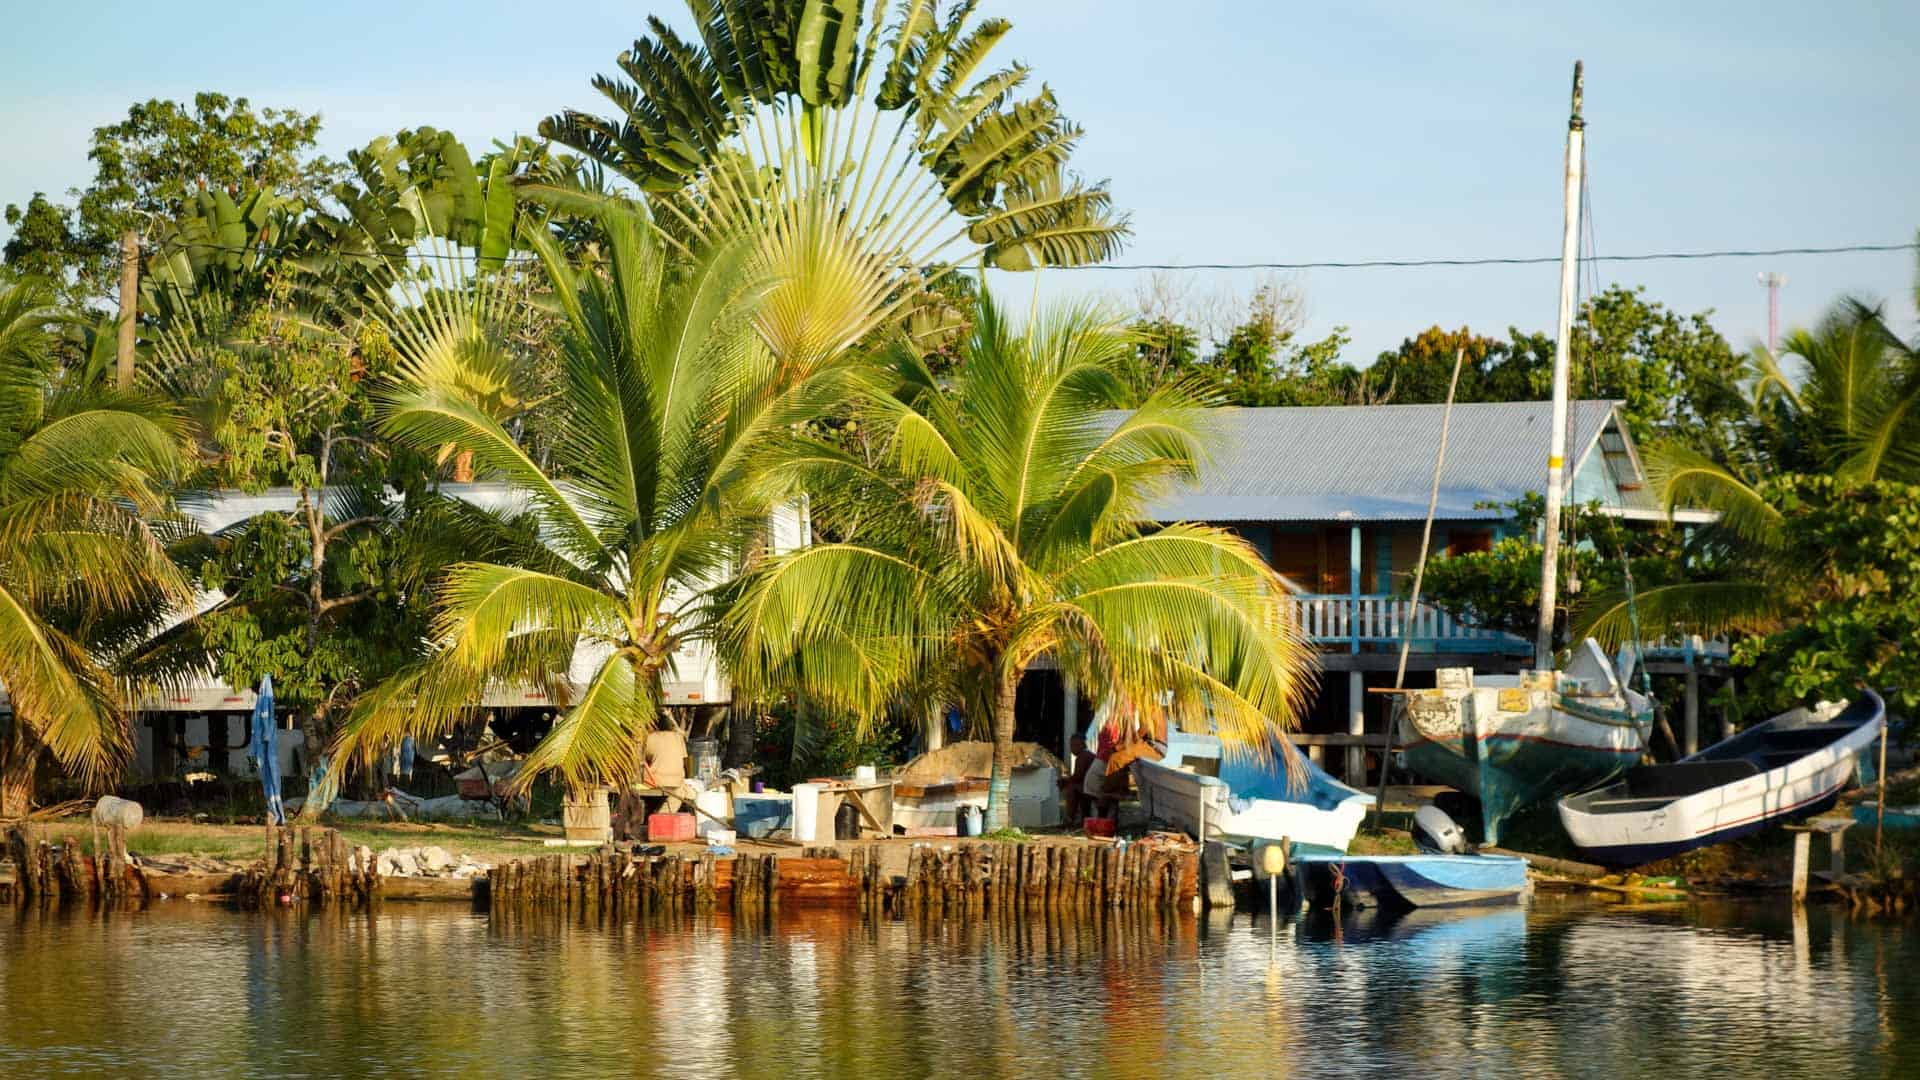 Houses on the riverside near Placencia, Belize